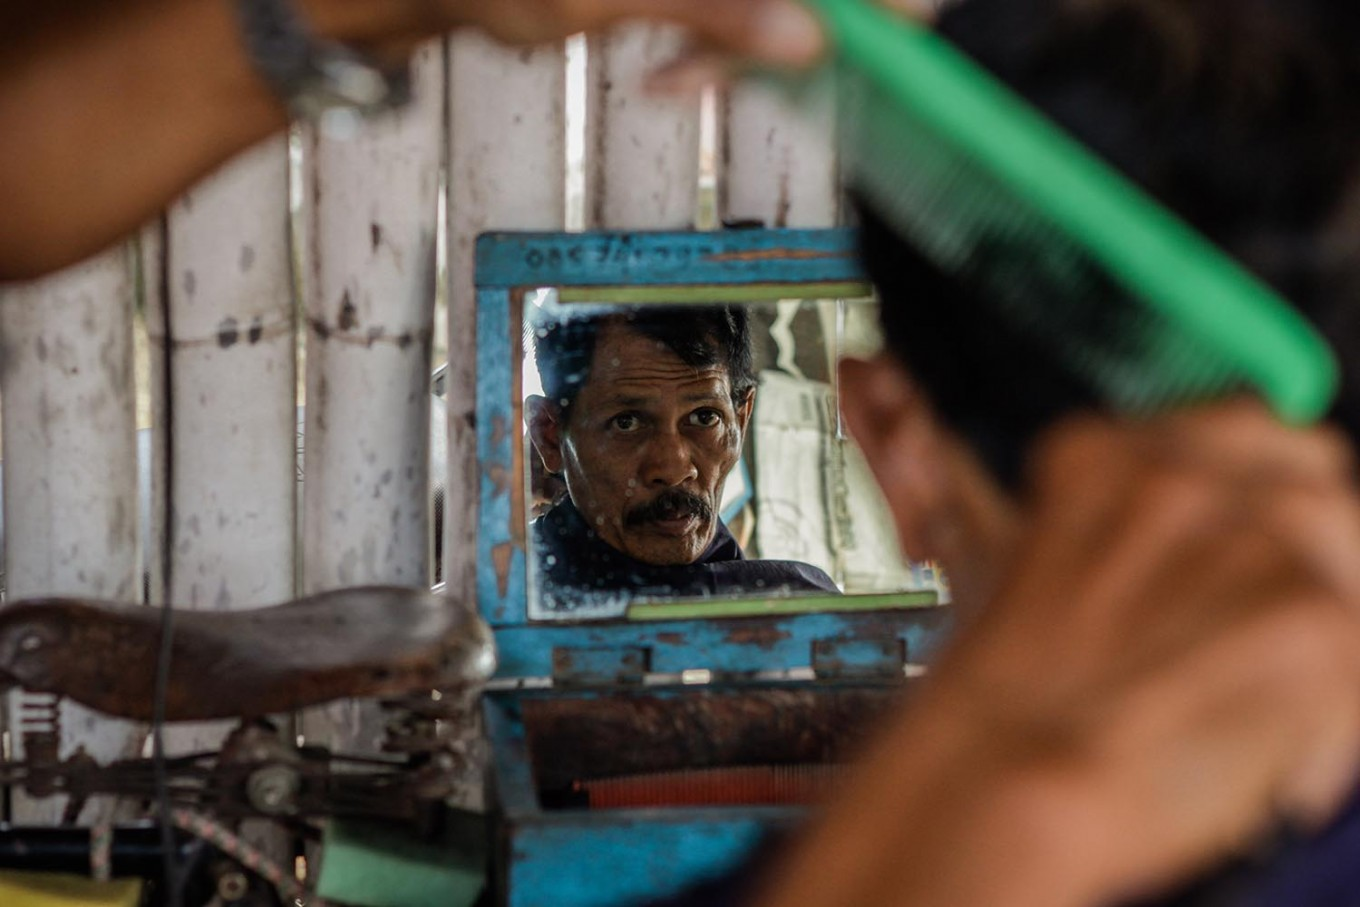 A man observes his haircut from a mirror. JP/Anggertimur Lanang Tinarbuko